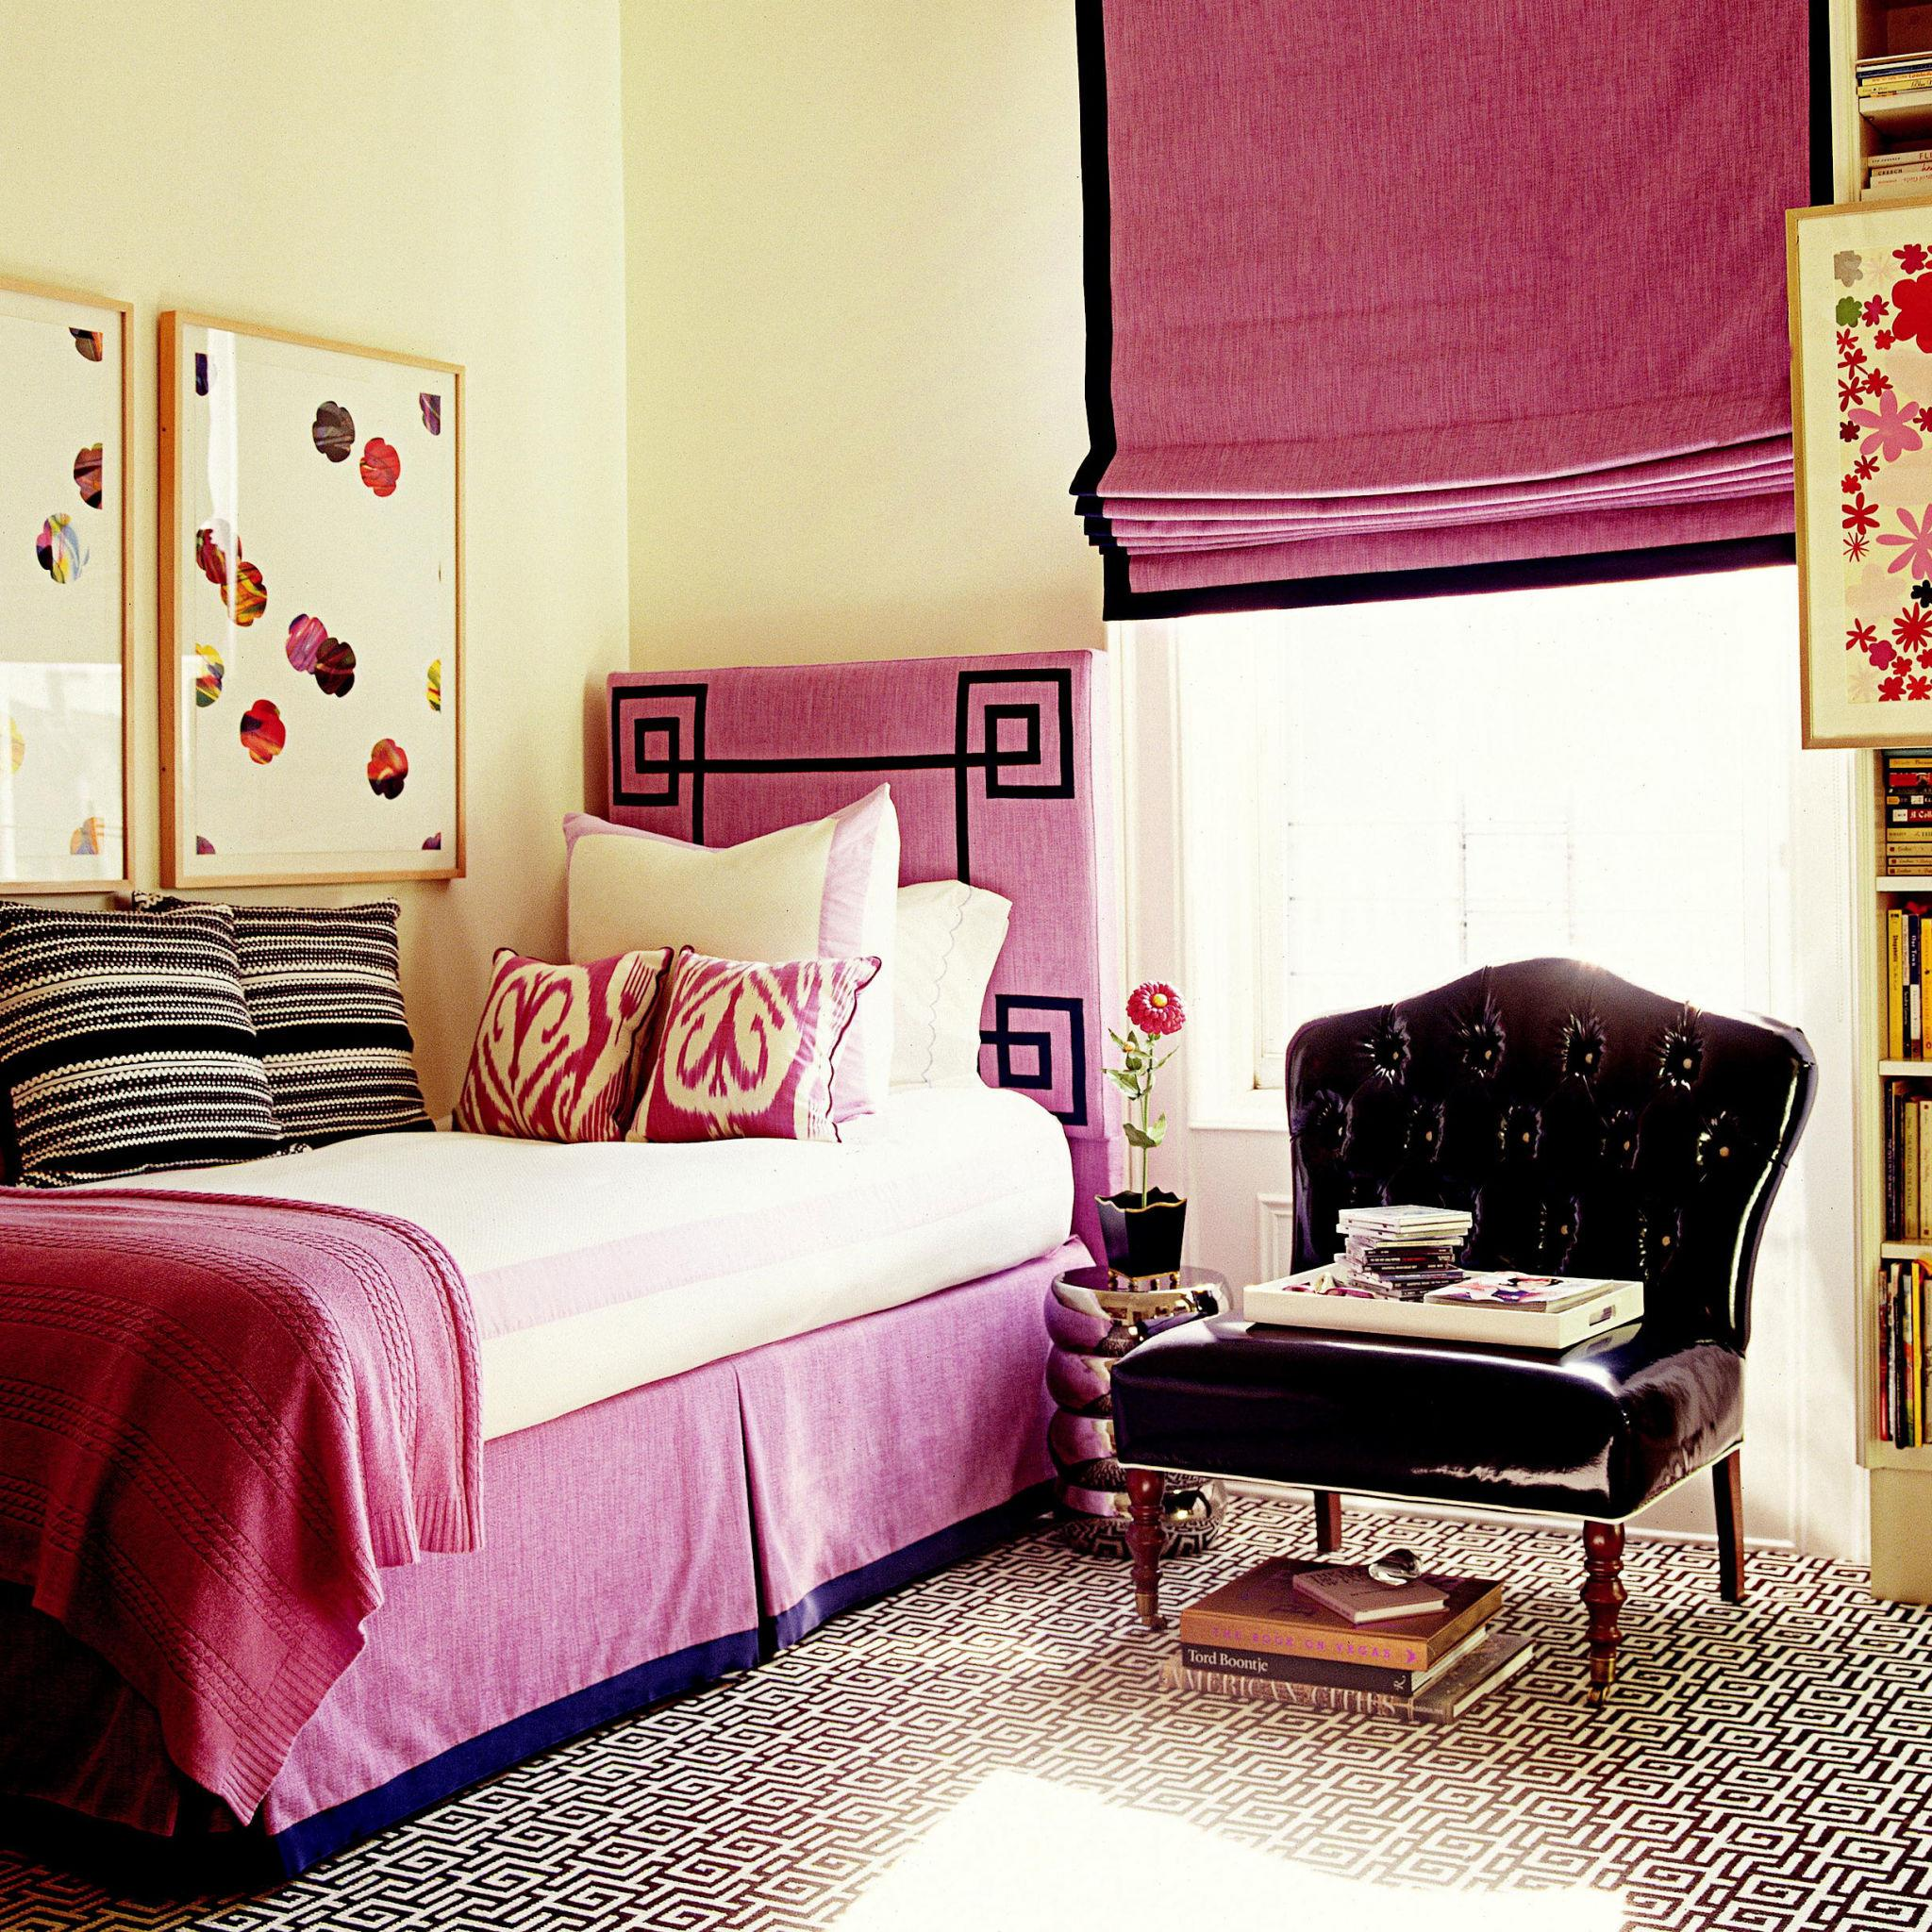 Trends of Cool Easy Bedroom Decor Ideas that you must See @house2homegoods.net